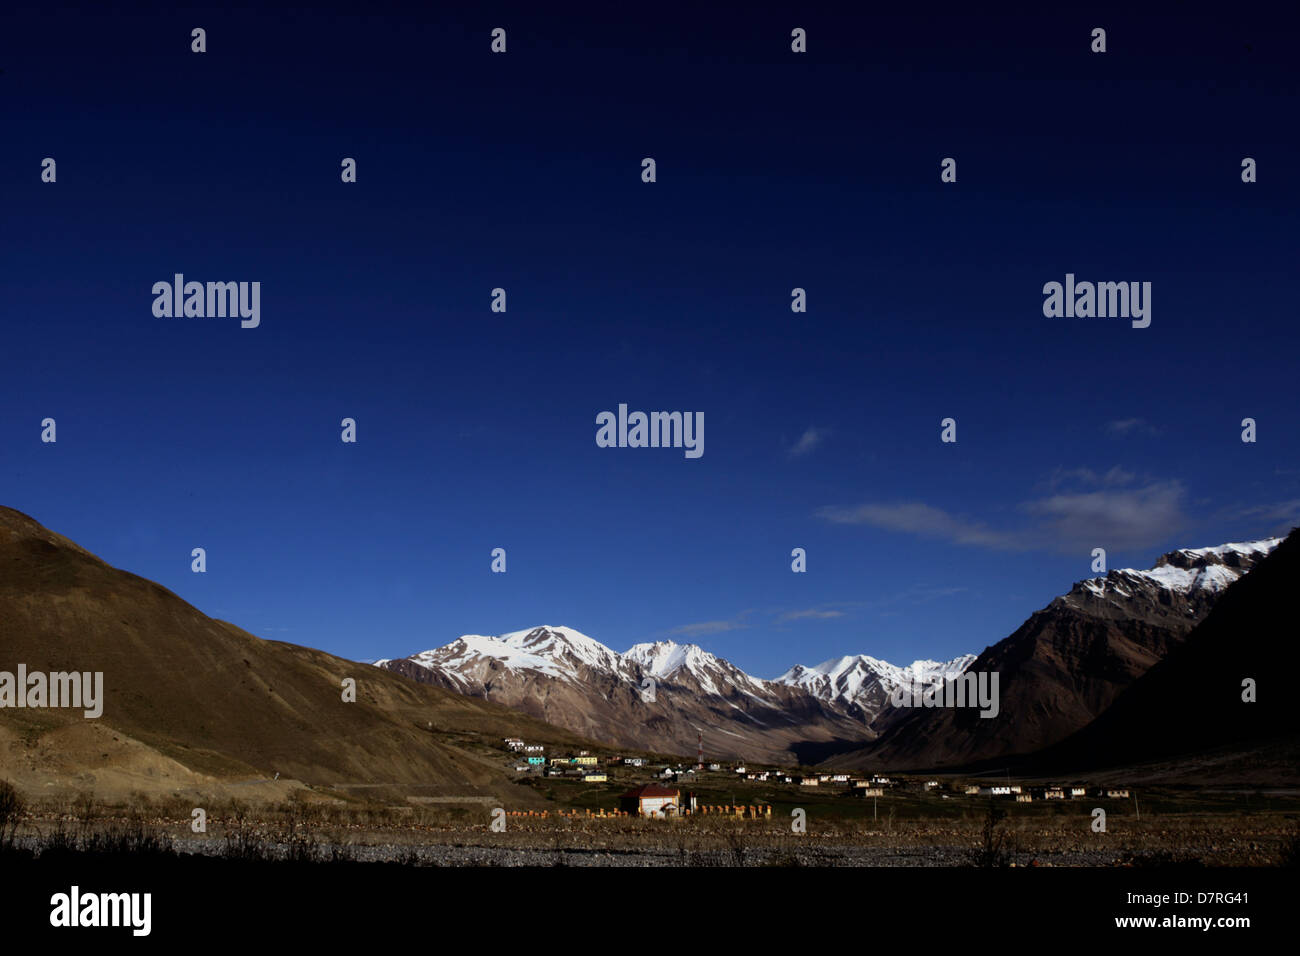 Landscape of Lossar in Spiti valley of cold desert in Himachal Pradesh, India - Stock Image